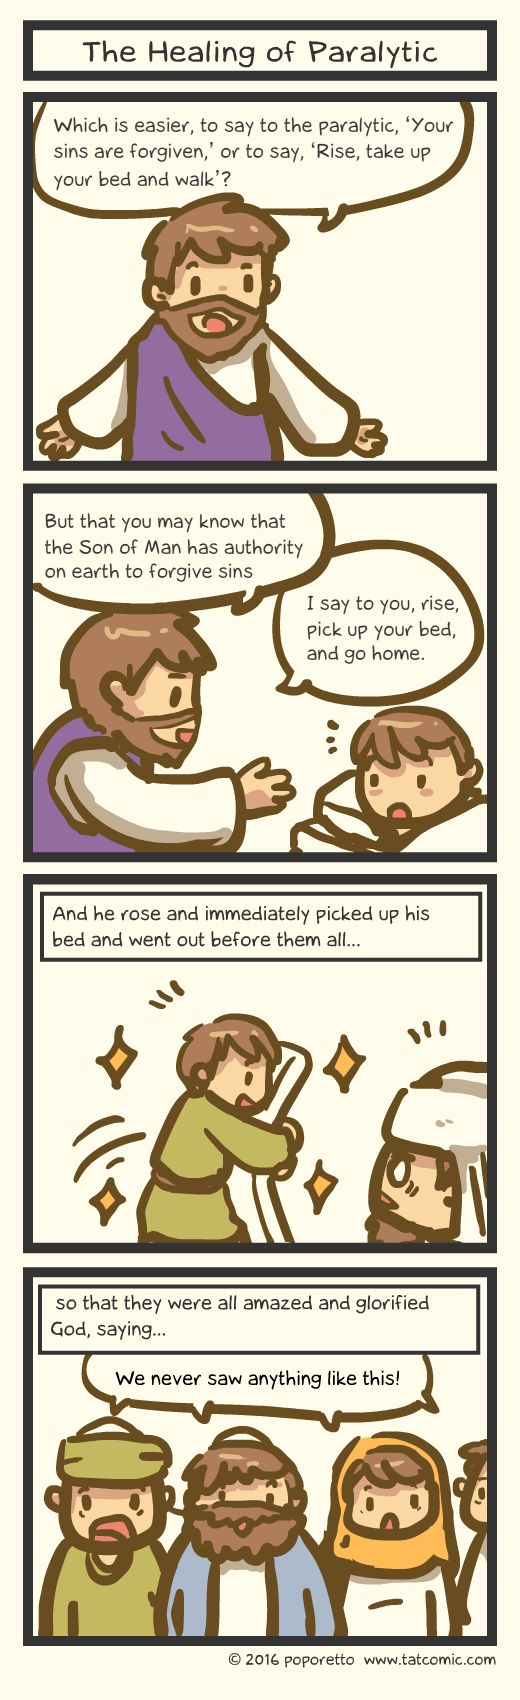 Book of mark comic gospel about how jesus healed the leper and he picked up his own bed